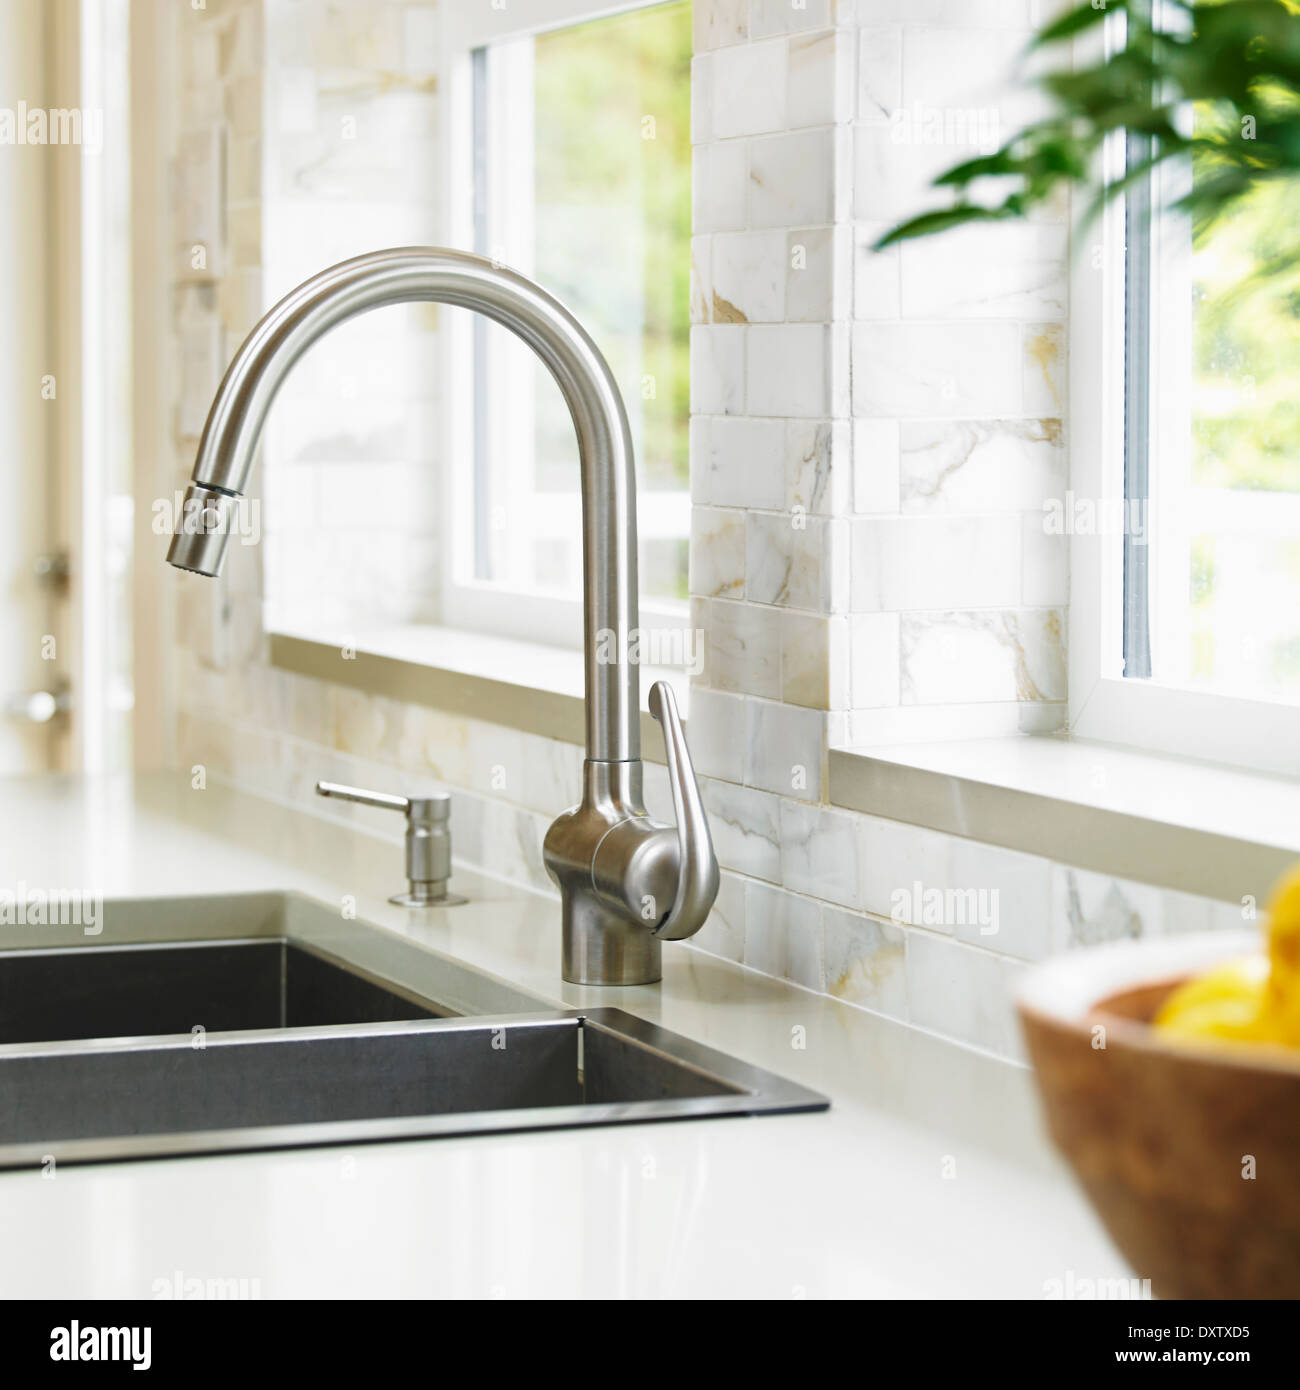 Kitchen Faucets Vancouver Bc: Close-up Of Stainless Steel Kitchen Faucet With Marble